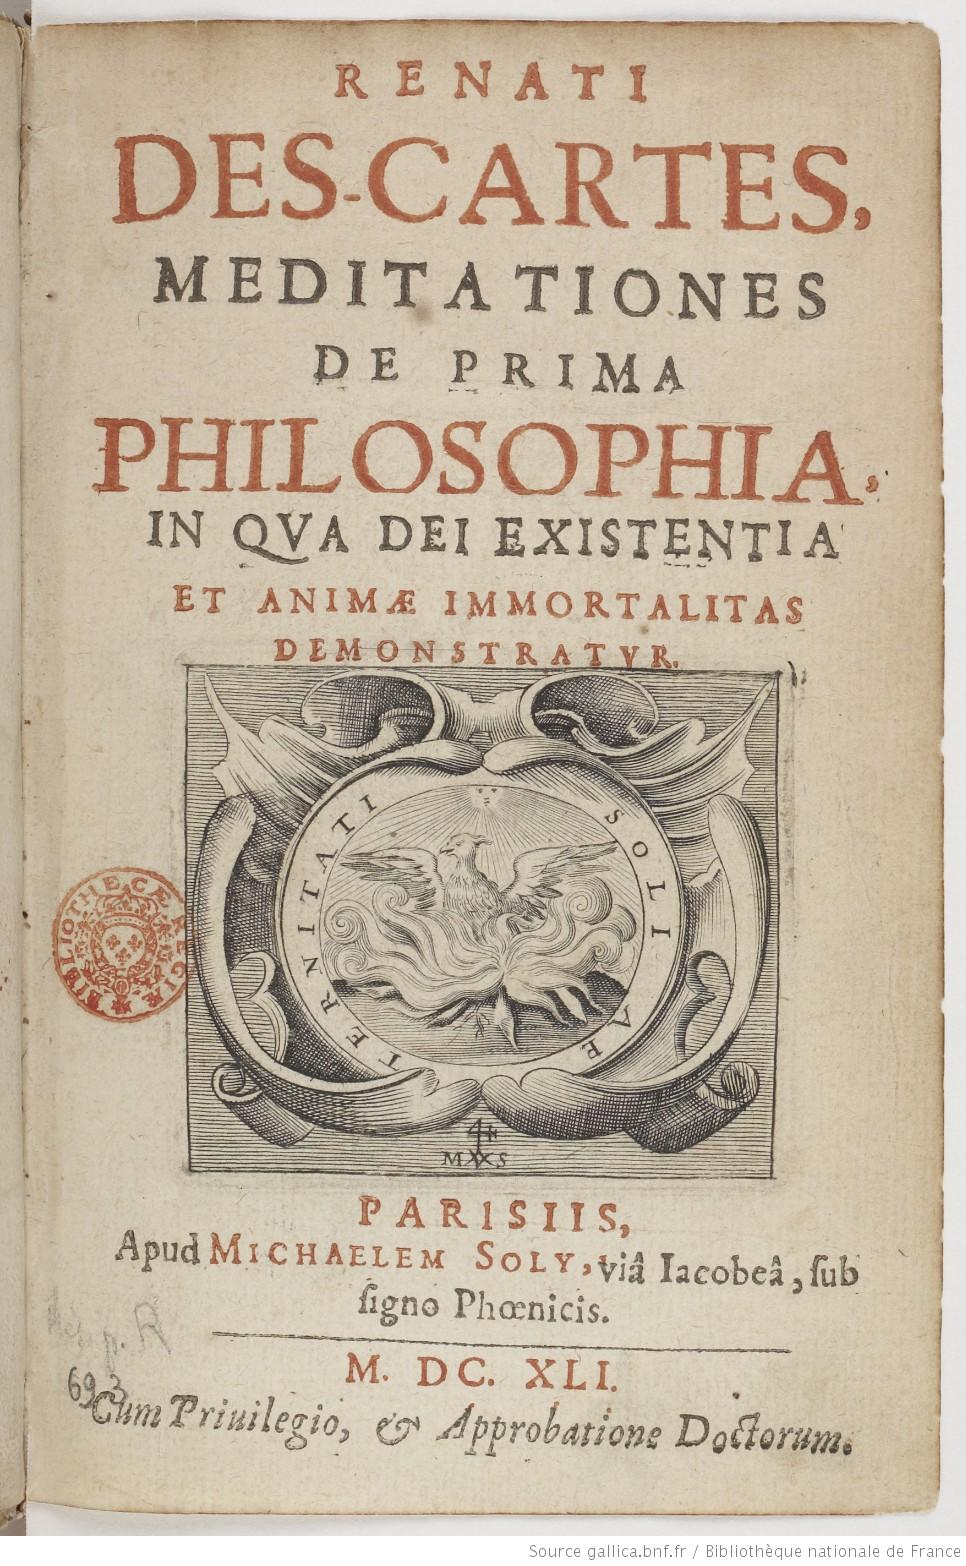 Meditations on First Philosophy - Wikipedia